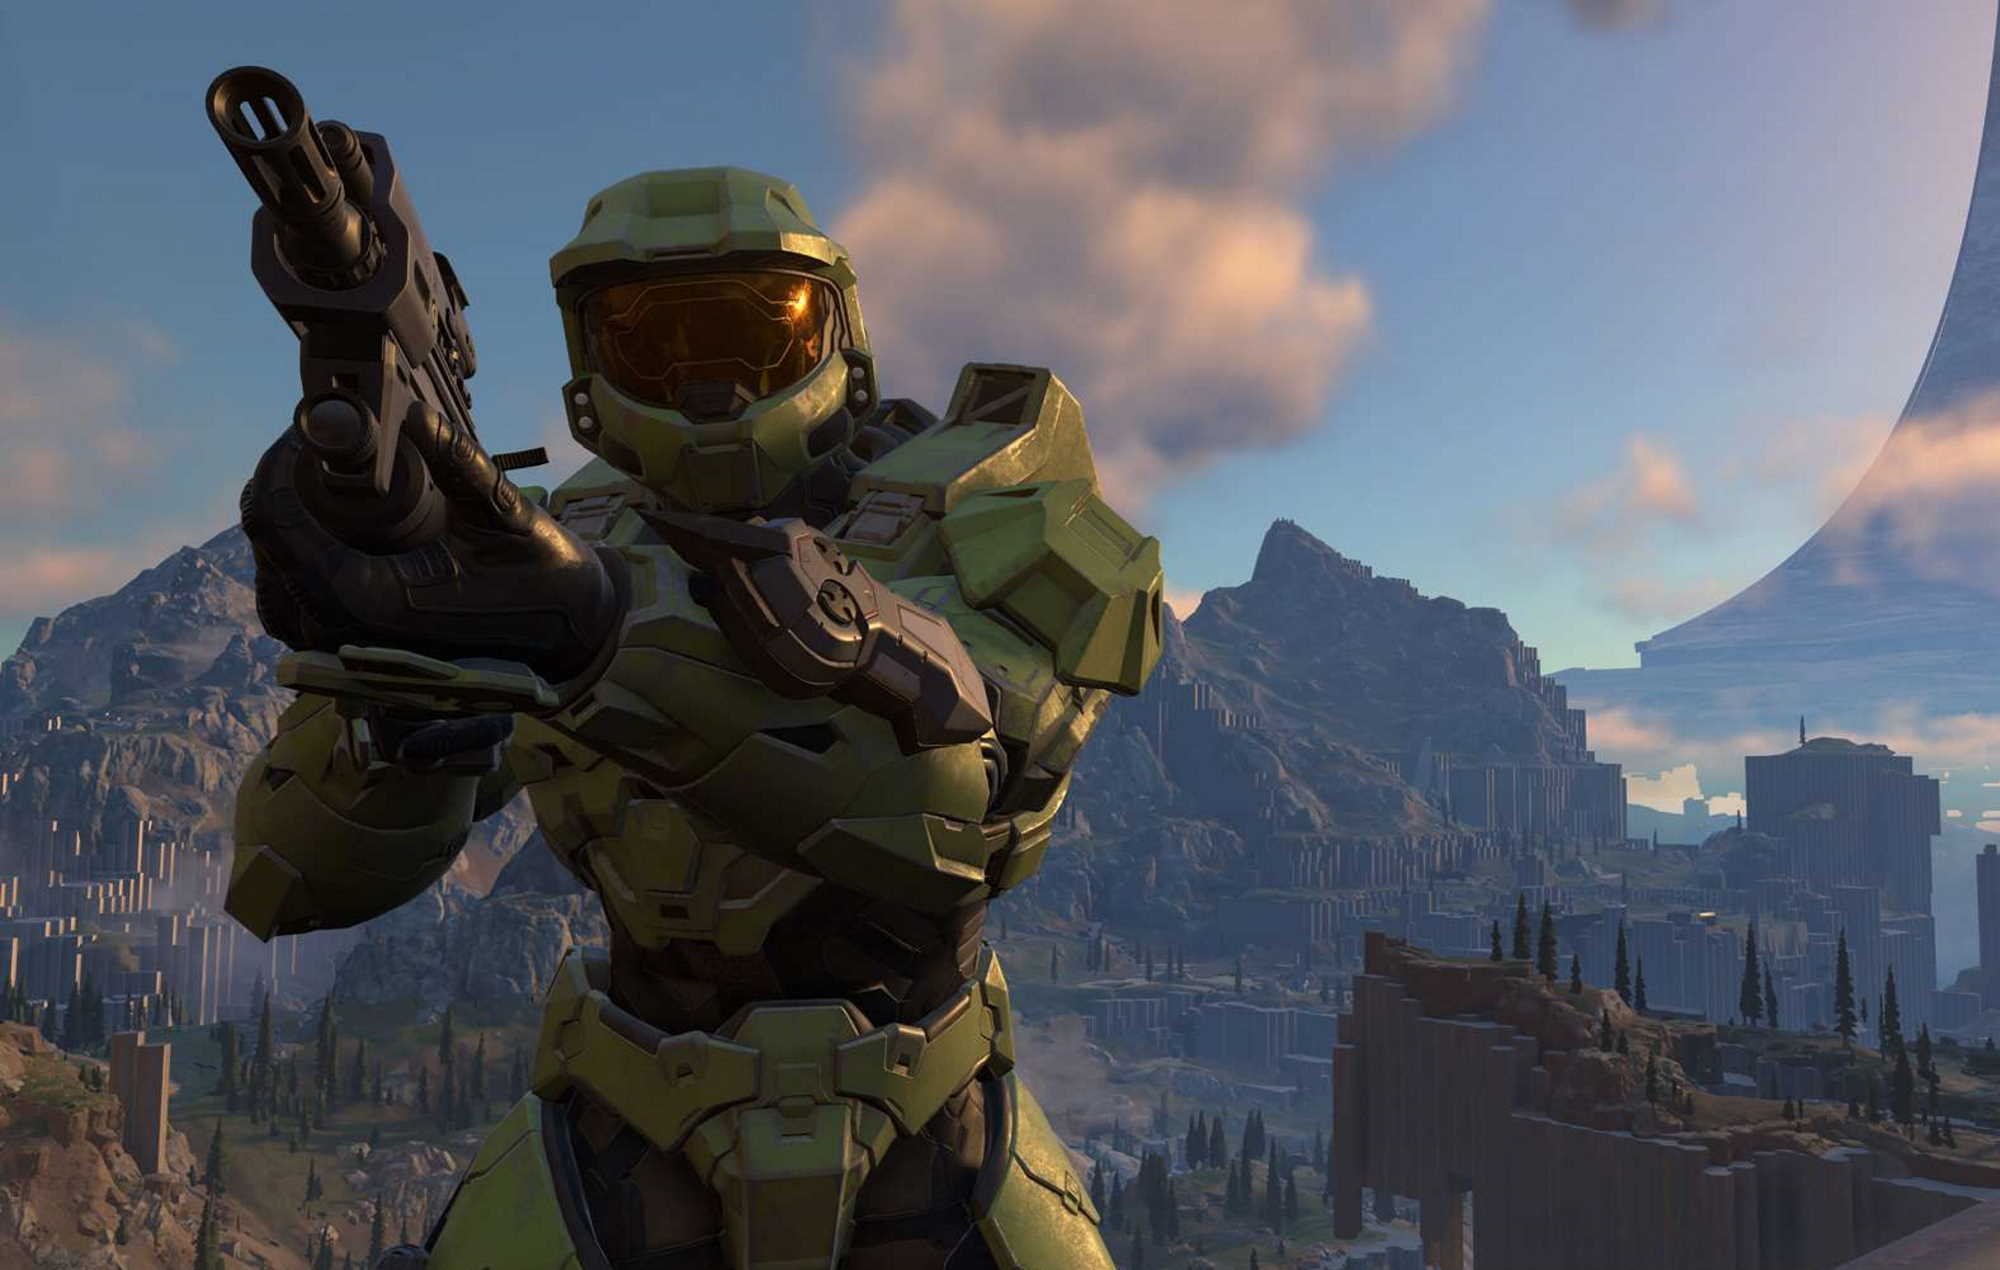 'Halo Infinite' is giving the best bits of 'Halo 5' multiplayer a second chance - NME.com